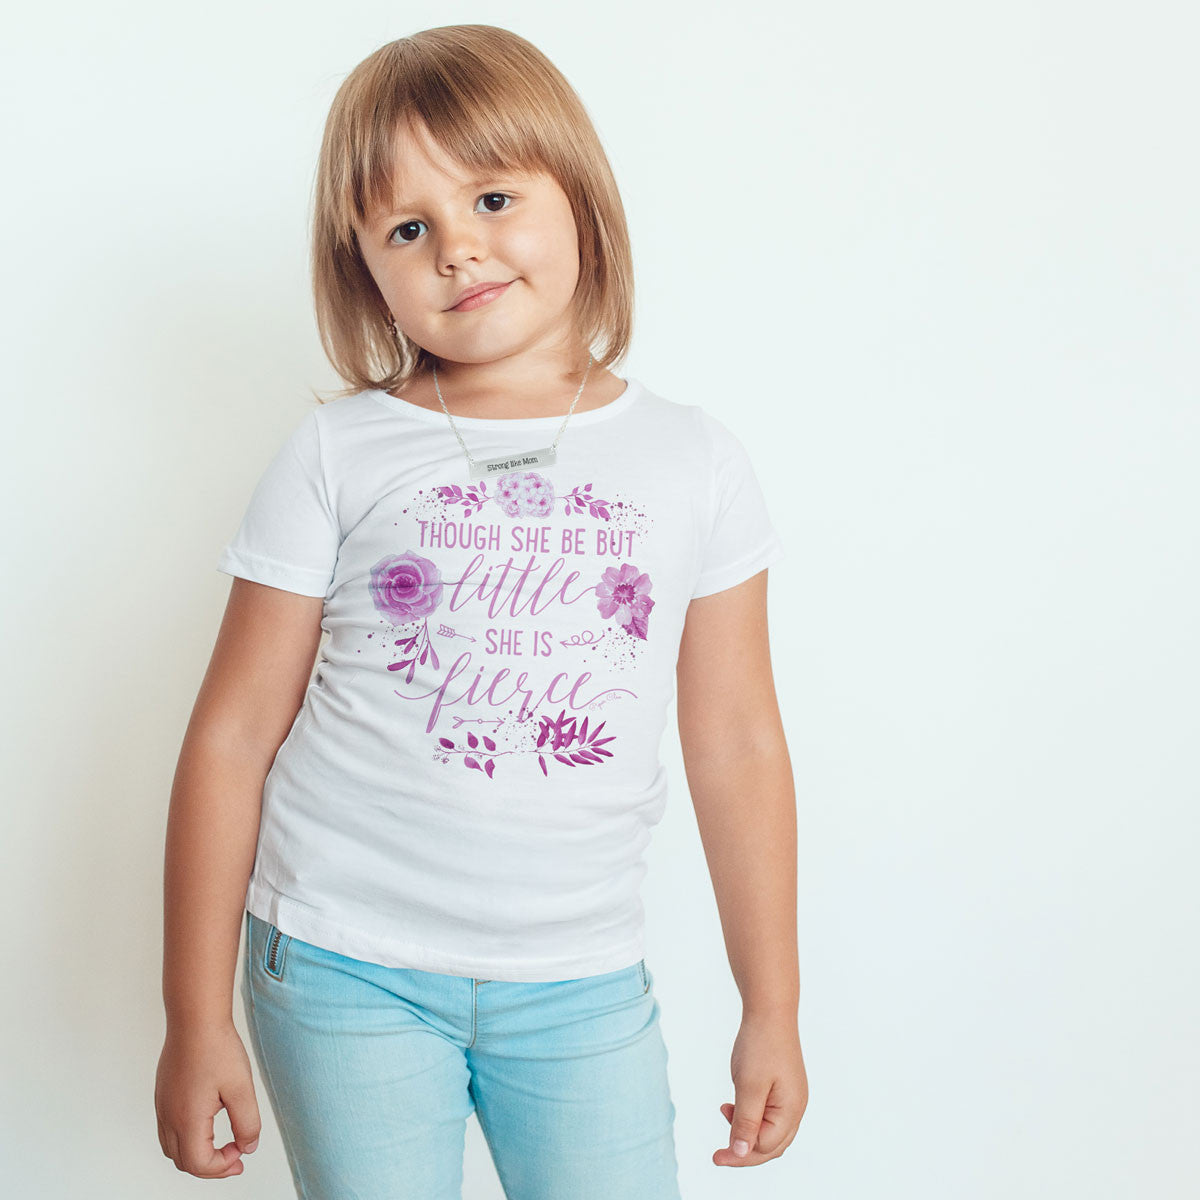 Though She Be But Little She Is Fierce - Pink - Toddler Softstyle T-Shirt